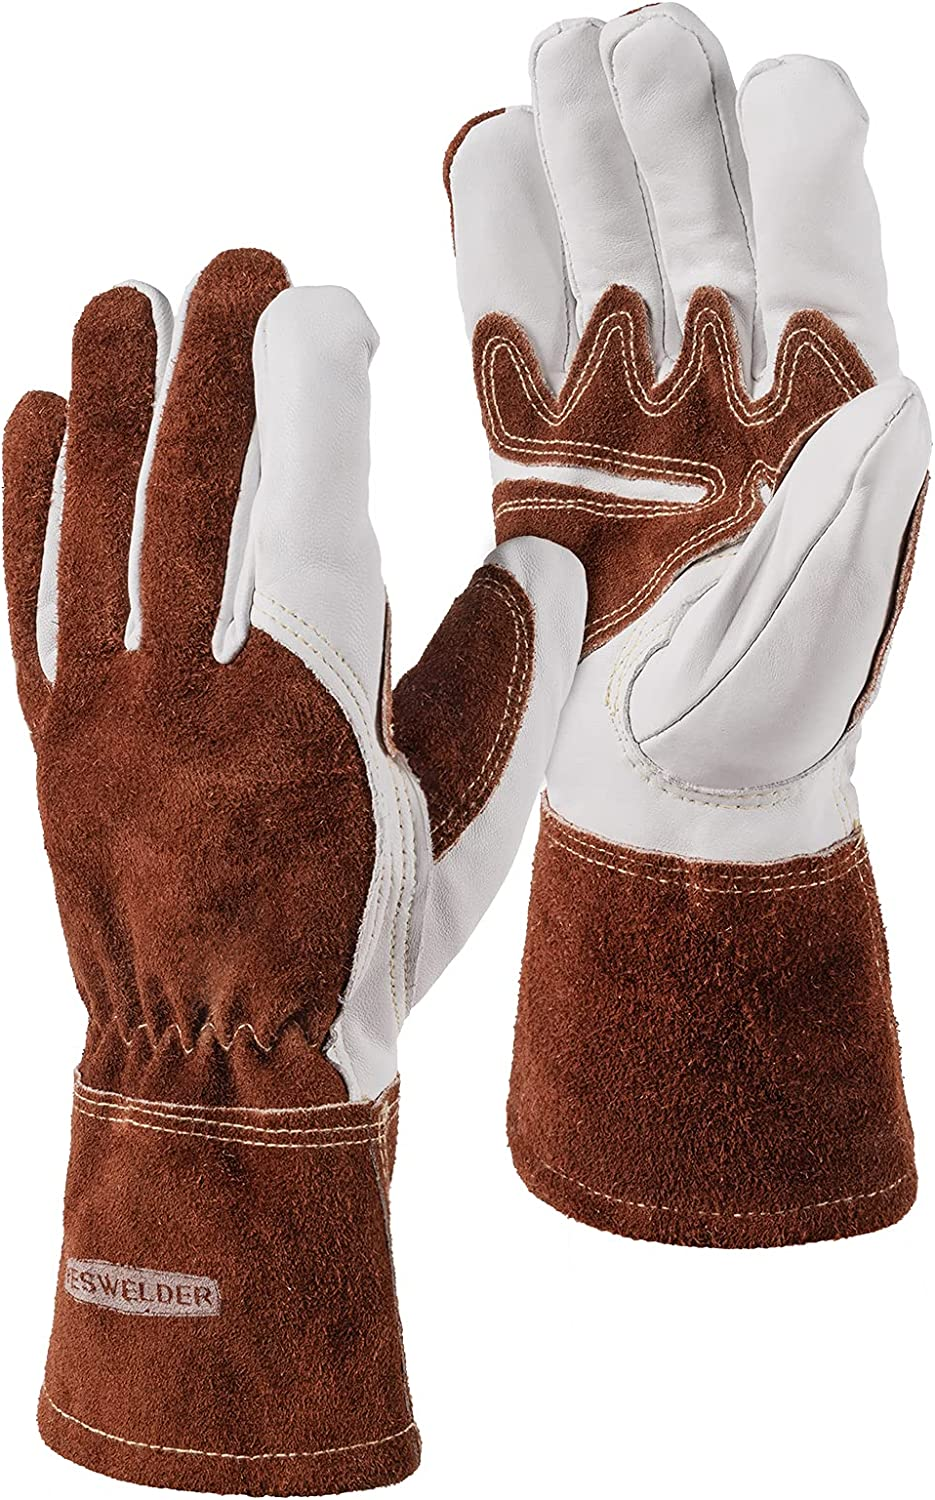 YESWELDER Welding Gloves for TIG Japan Maker New Heat Le Durable New Shipping Free Shipping Spark Resistant